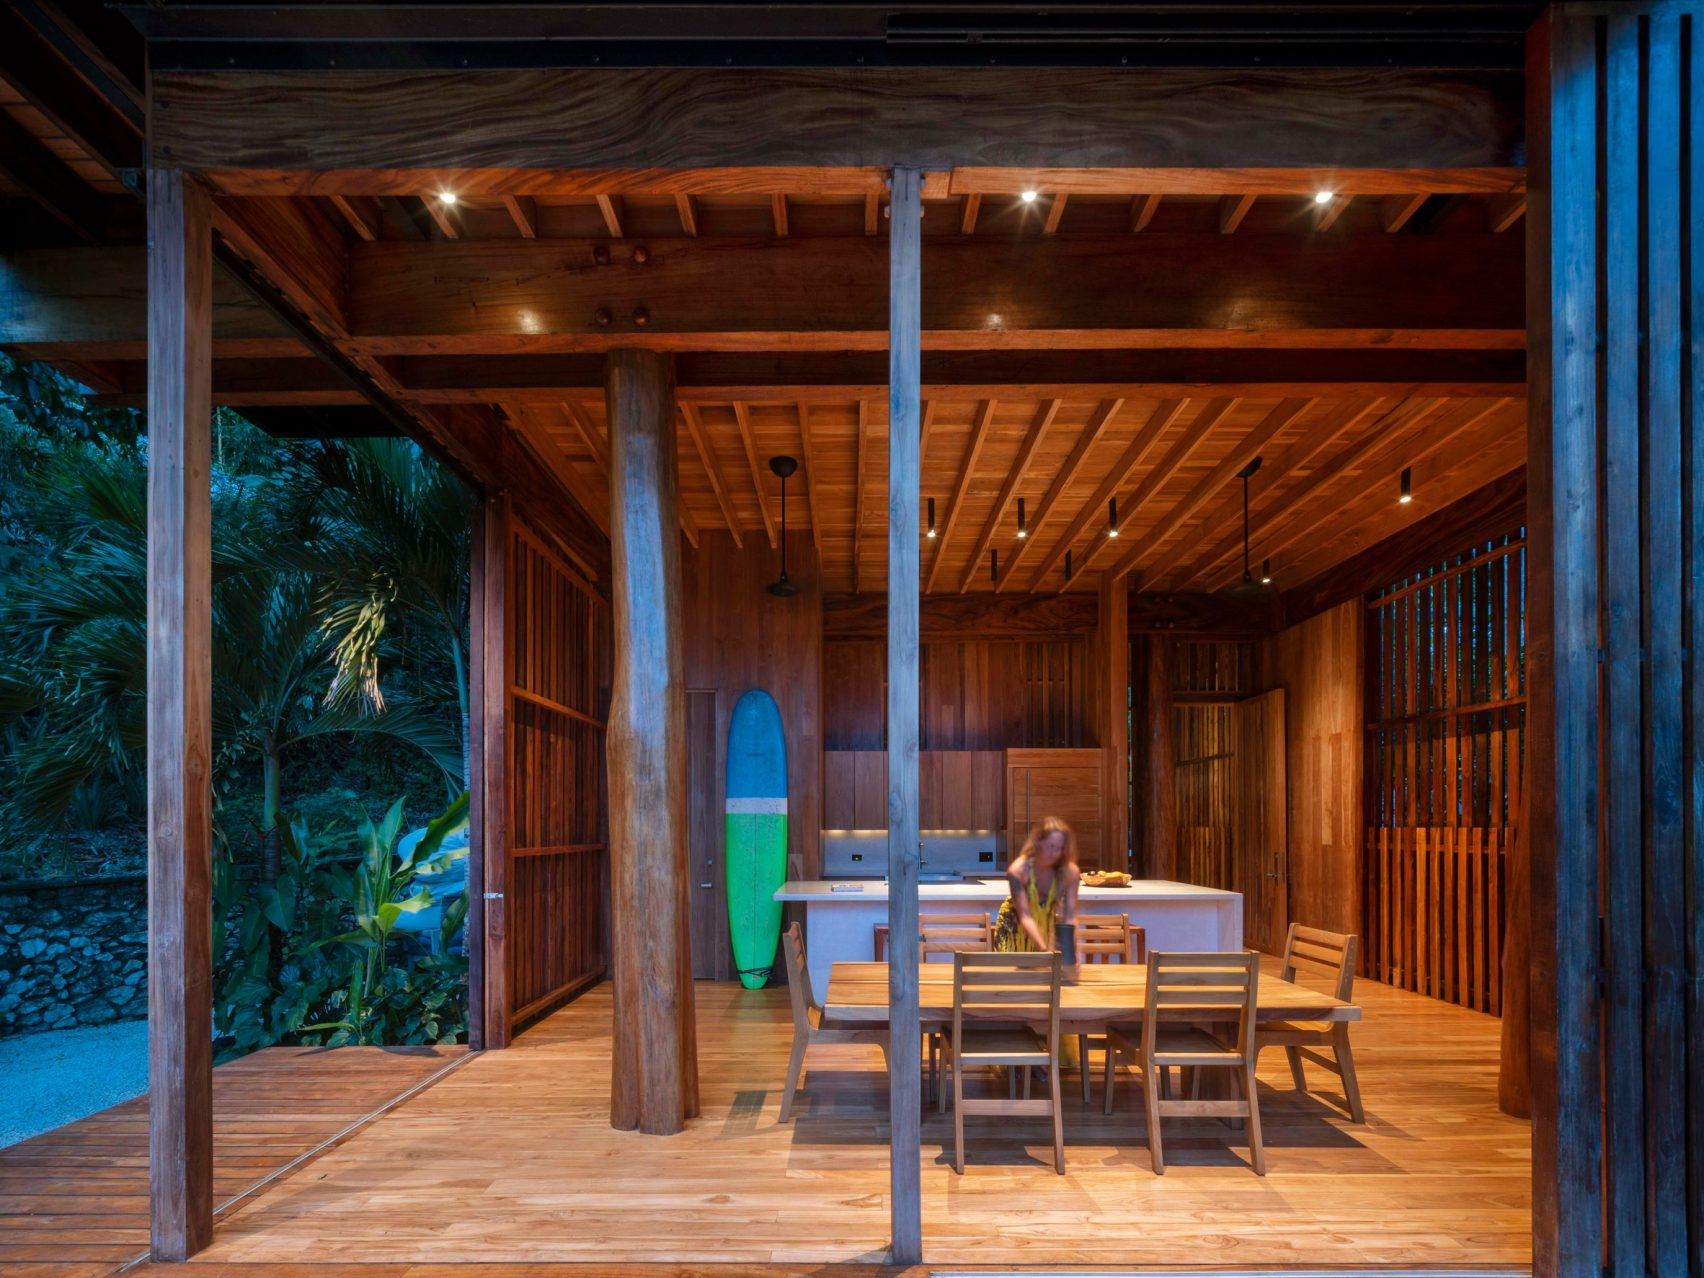 luxury, design, costa rica, caribbean sea, architecture, holiday, summer, travel, wooden house, home, relax, nature, landscape, chill out, beach, treehouse